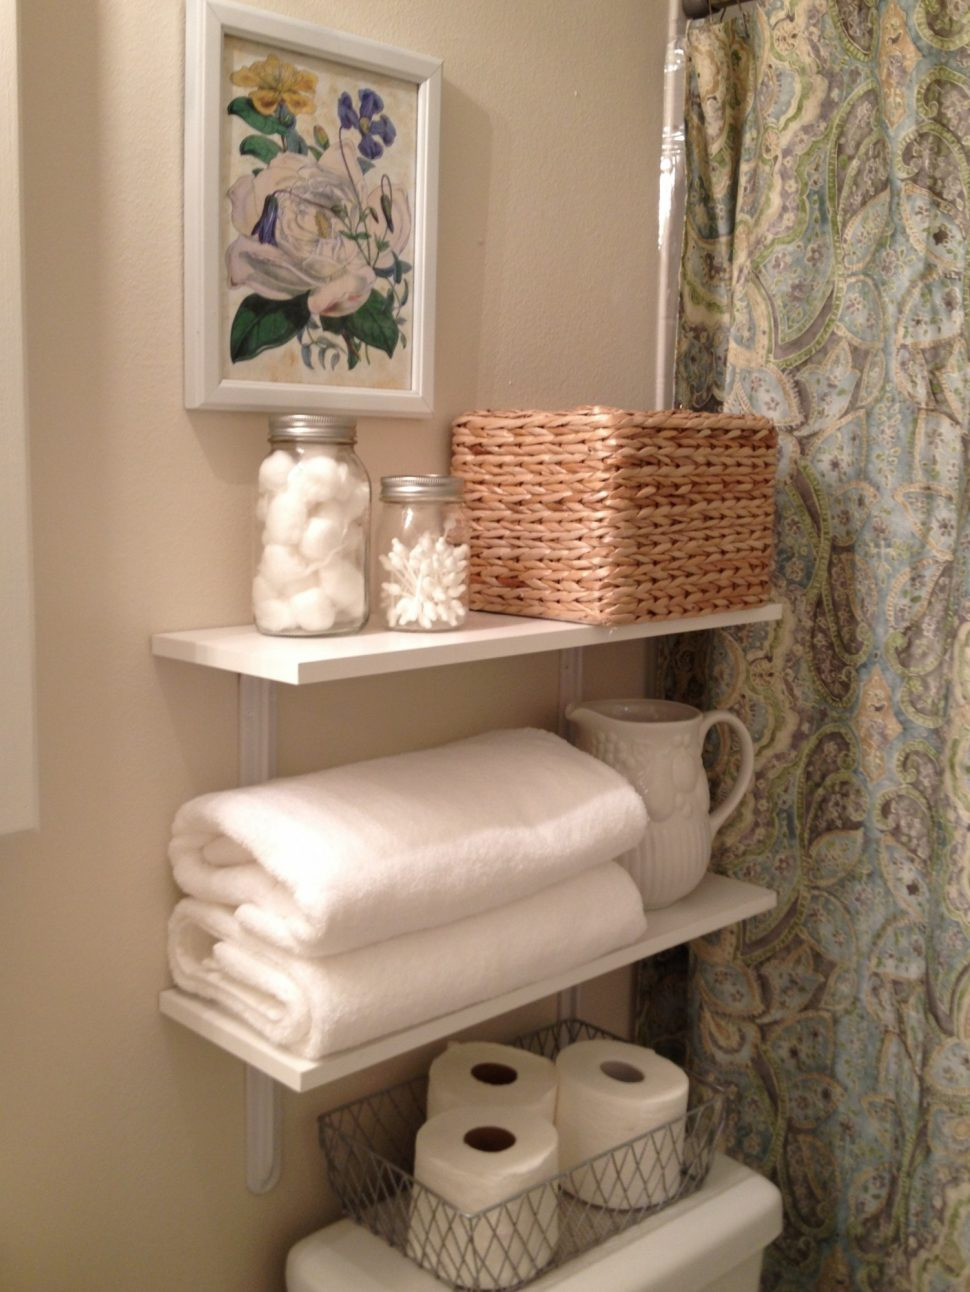 Decorative towels for Bathroom Ideas New Bathroom Bathroom Small Bathroom Decorating Ideas ifeature